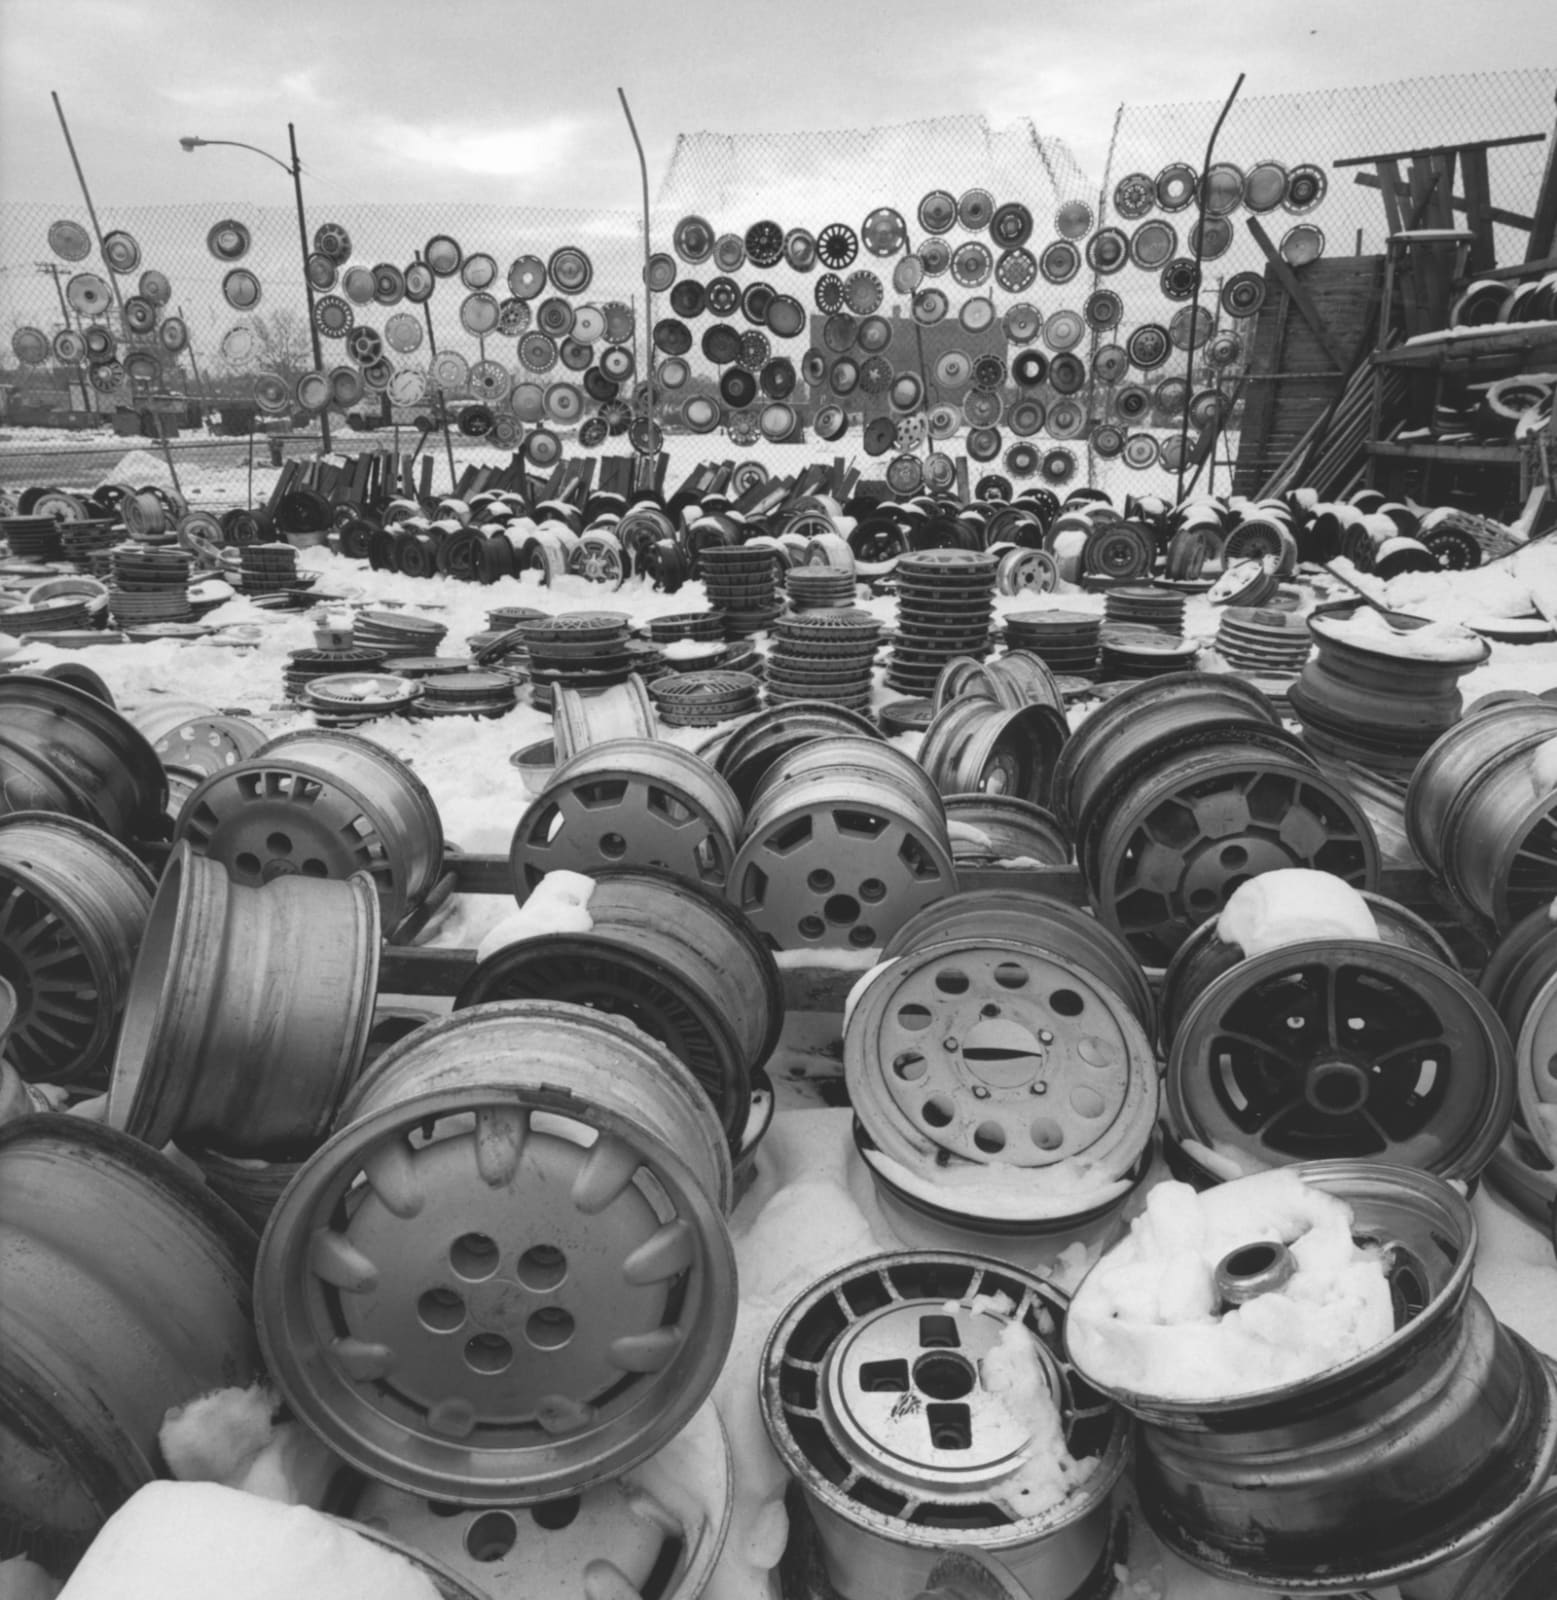 Ron Gordon, Wheels and hubcaps, old Maxwell Street market, 1991